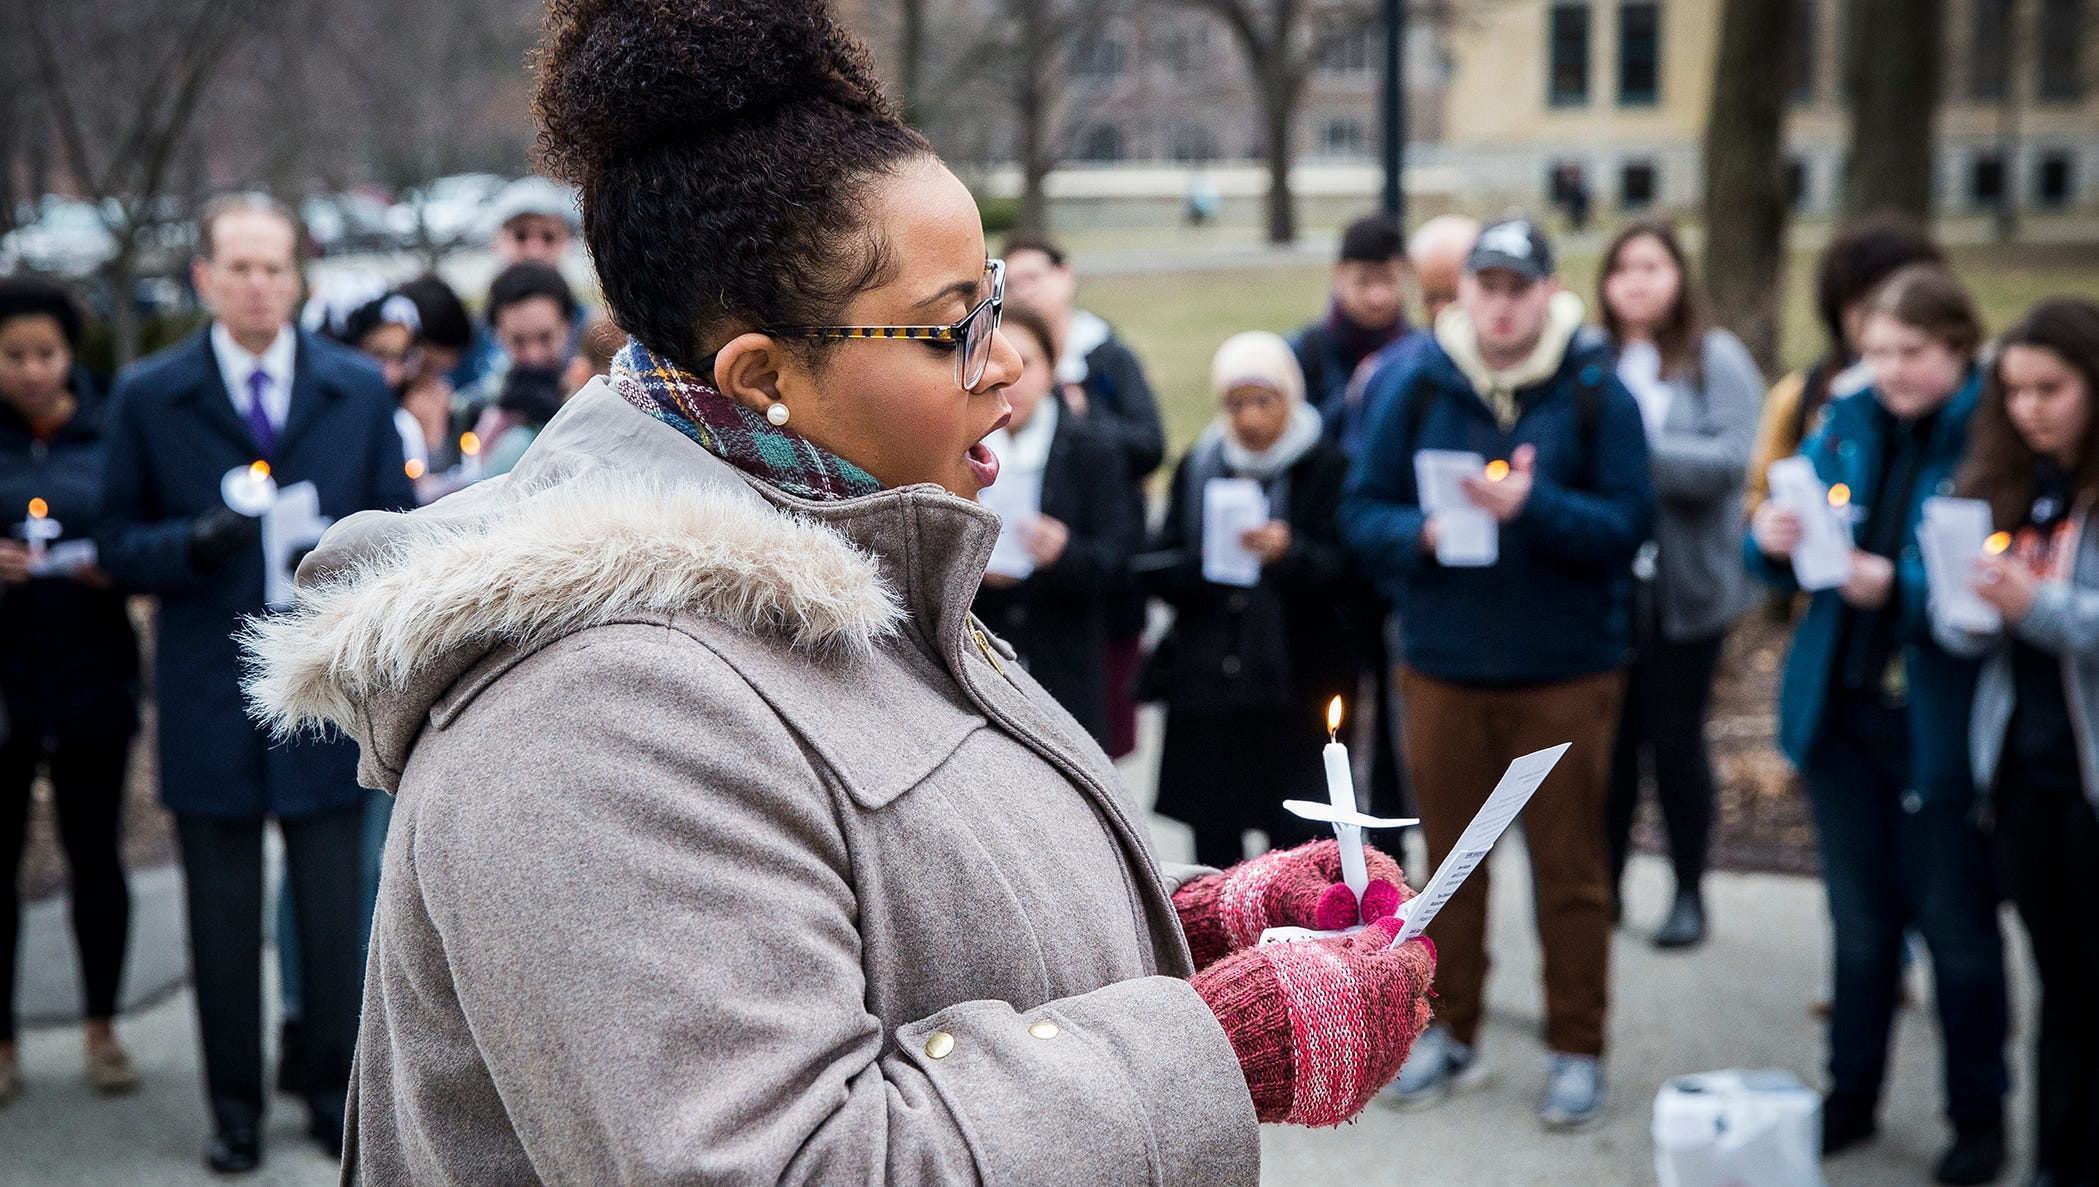 Shooting Christchurch Gallery: Ball State Holds Vigil For Christchurch Shooting Victims